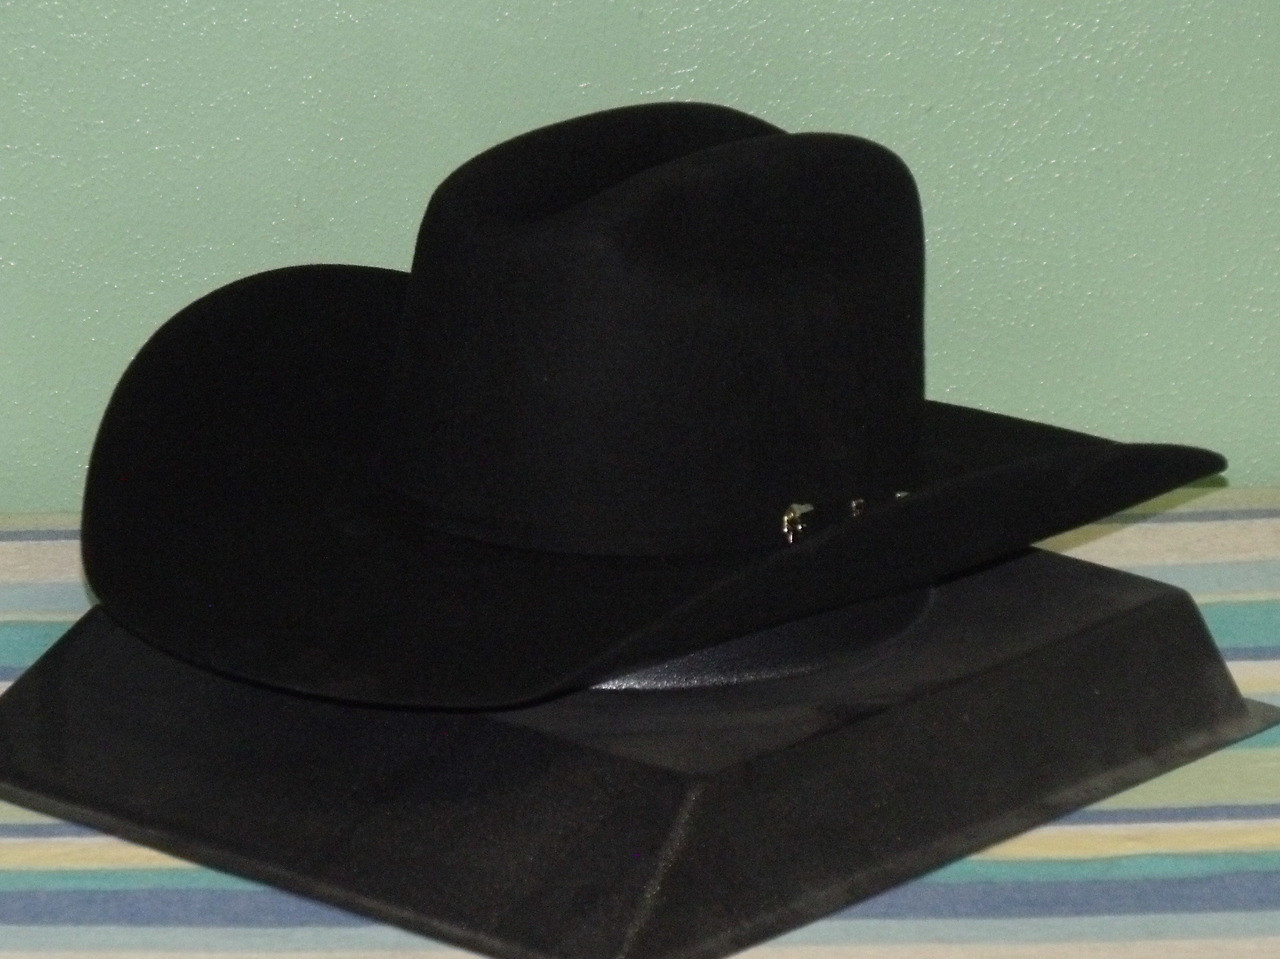 992476c536ea0 Ariat A75206 Select 3X Wool Cowboy Hat - One 2 mini Ranch